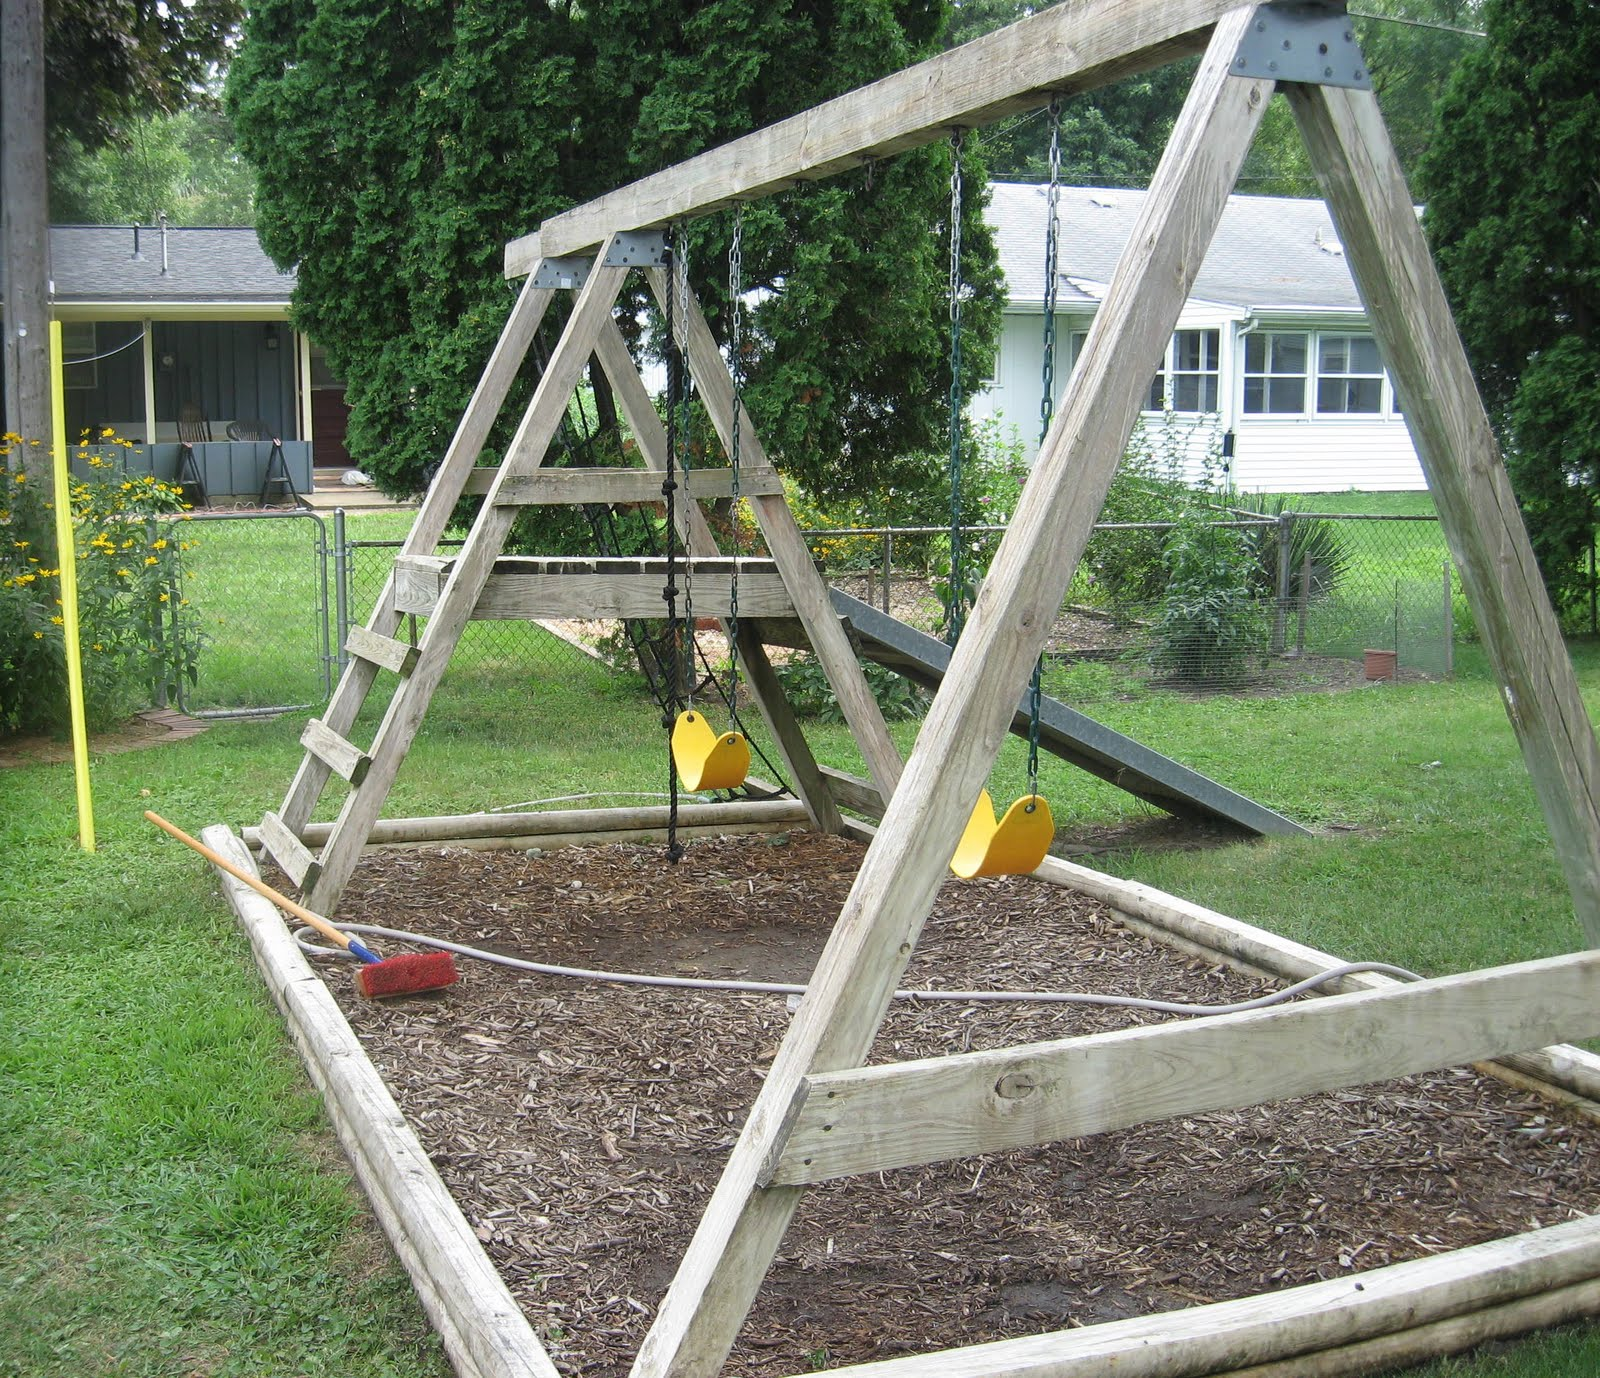 How to Refinish a Wood Swing Set